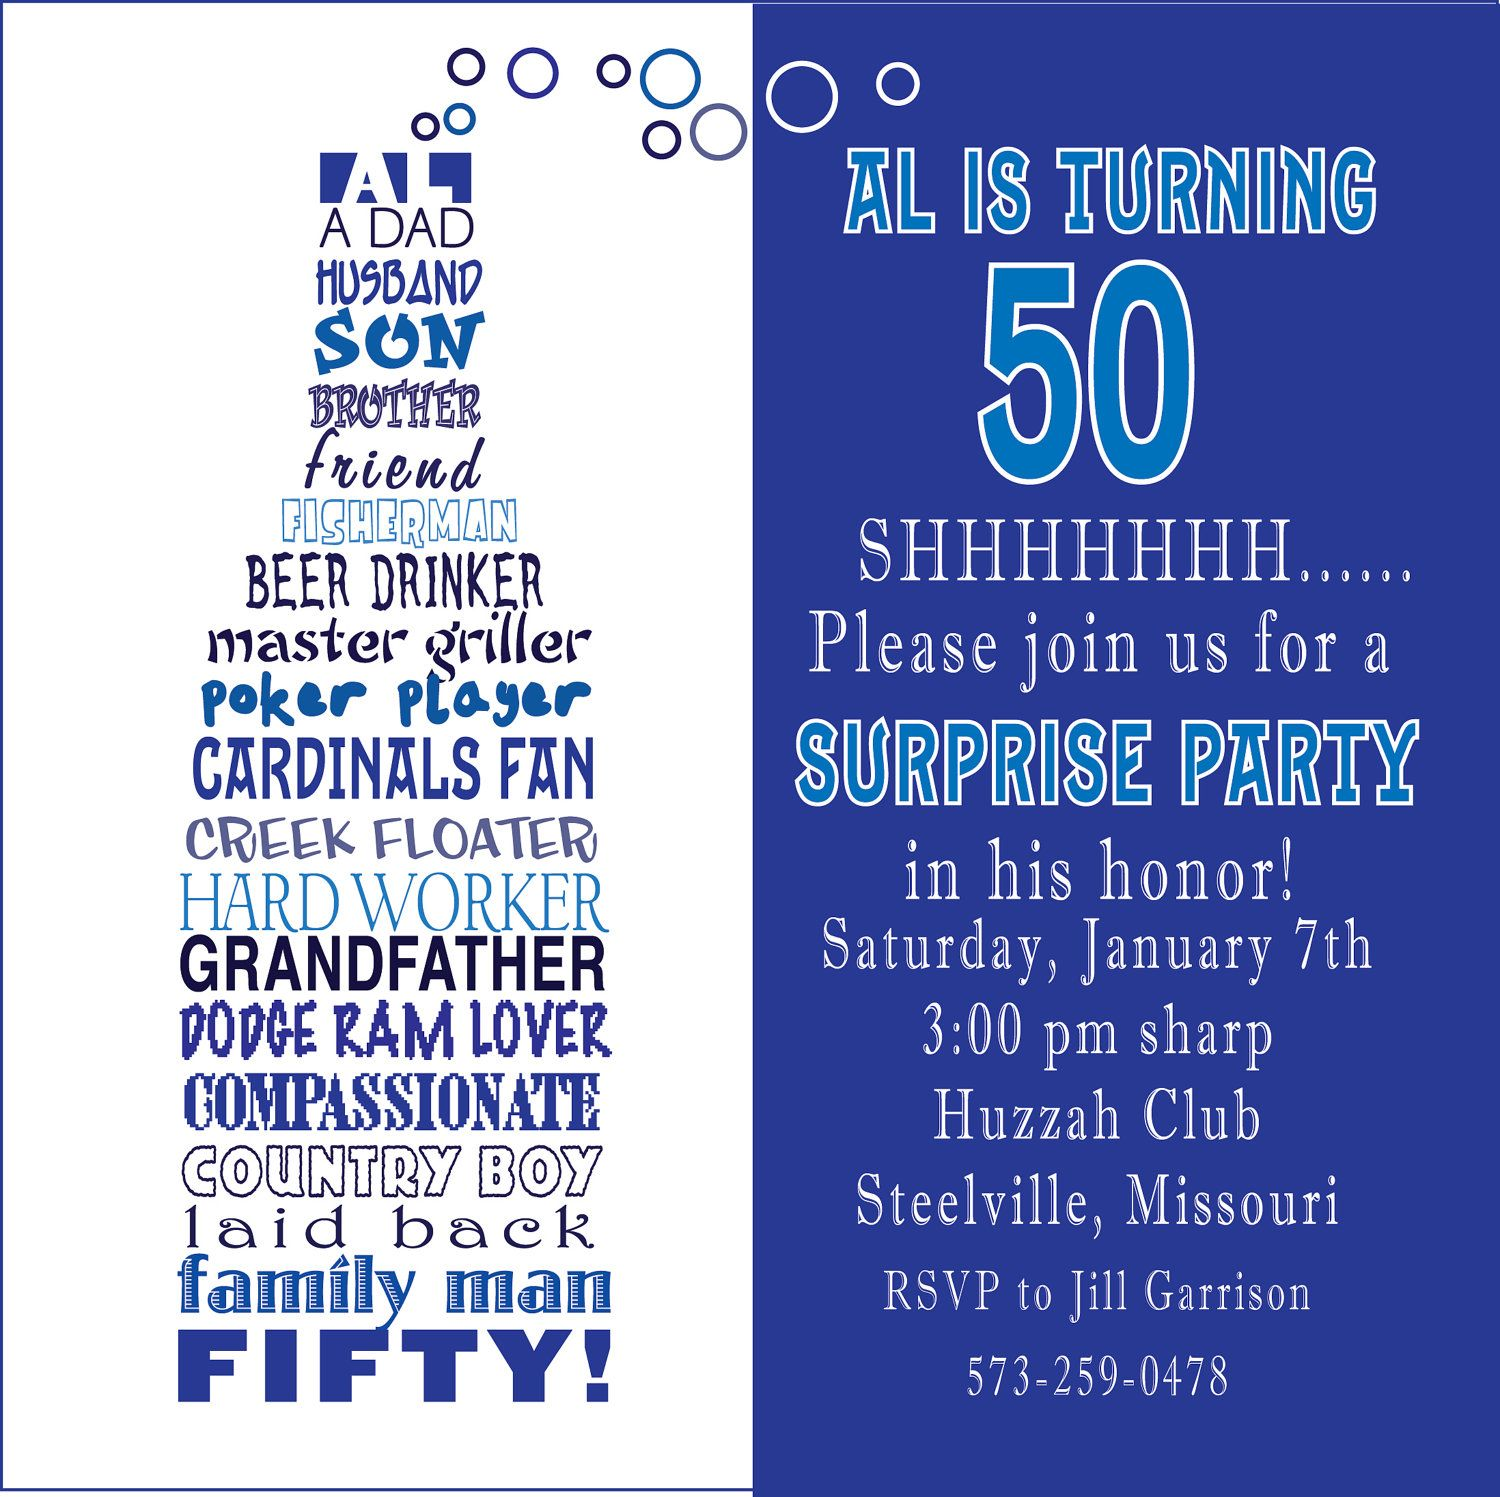 50th birthday party invitation wording ideas ; 6296a287cf25737d7b09ae9390246b78